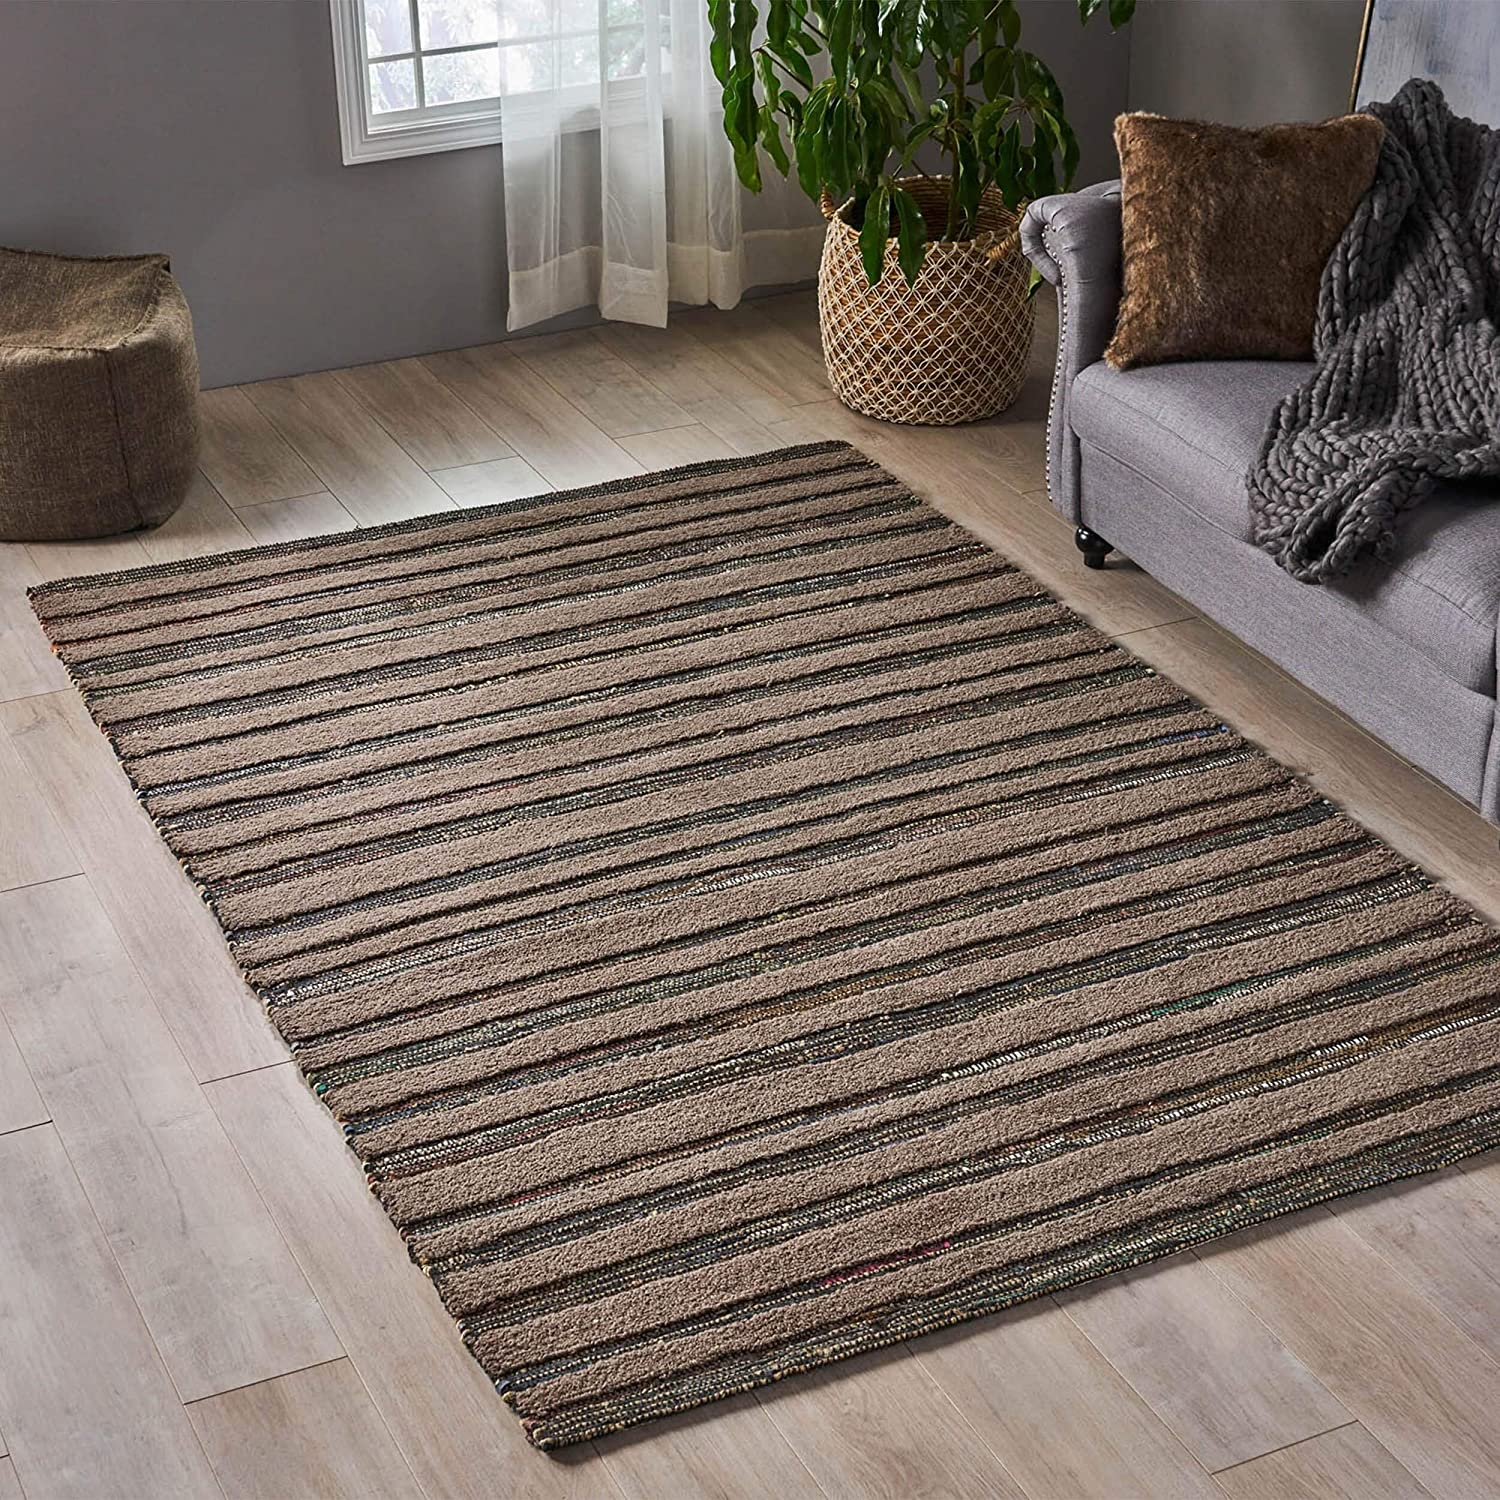 Boho Leather Wool Area Rug 5' X 8' Brown Color Stripe Modern Contemporary Hemp Latex Free Handmade